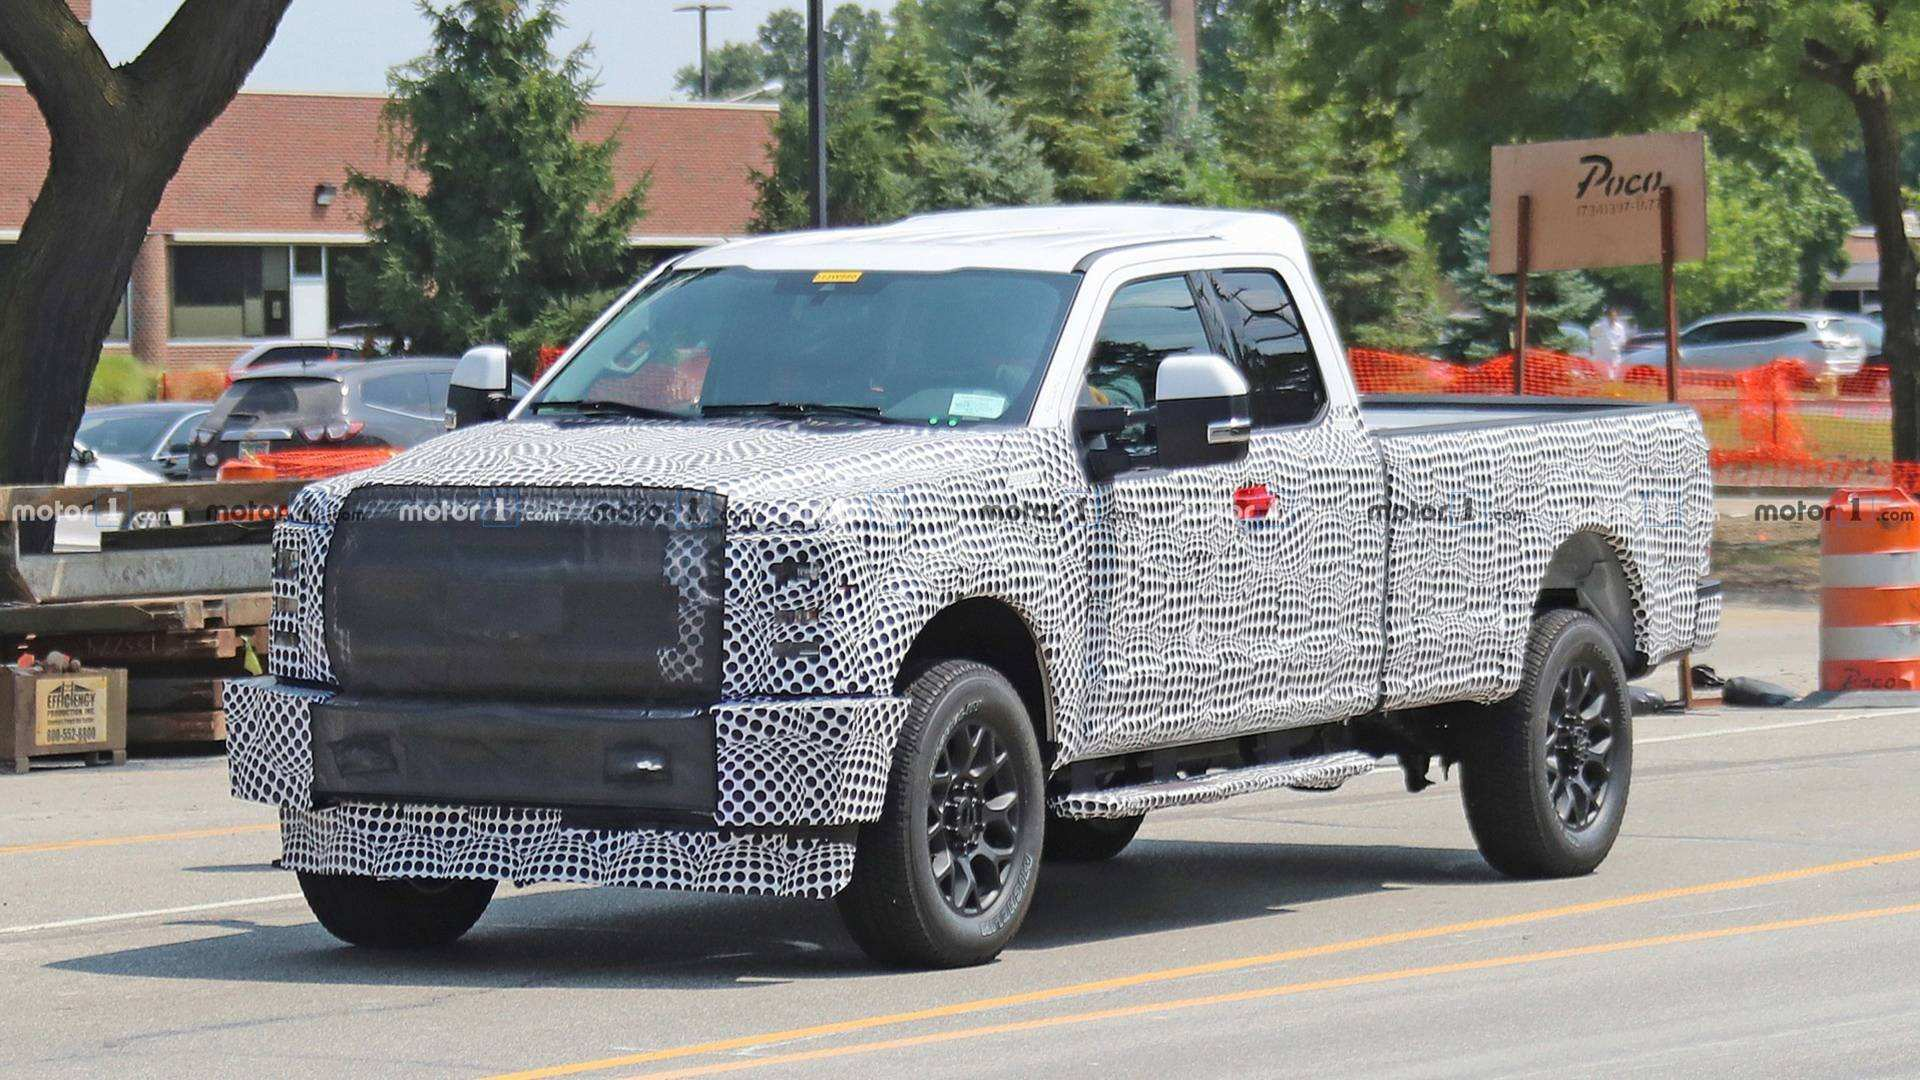 41 Gallery of Spy Shots Ford F350 Diesel Redesign with Spy Shots Ford F350 Diesel